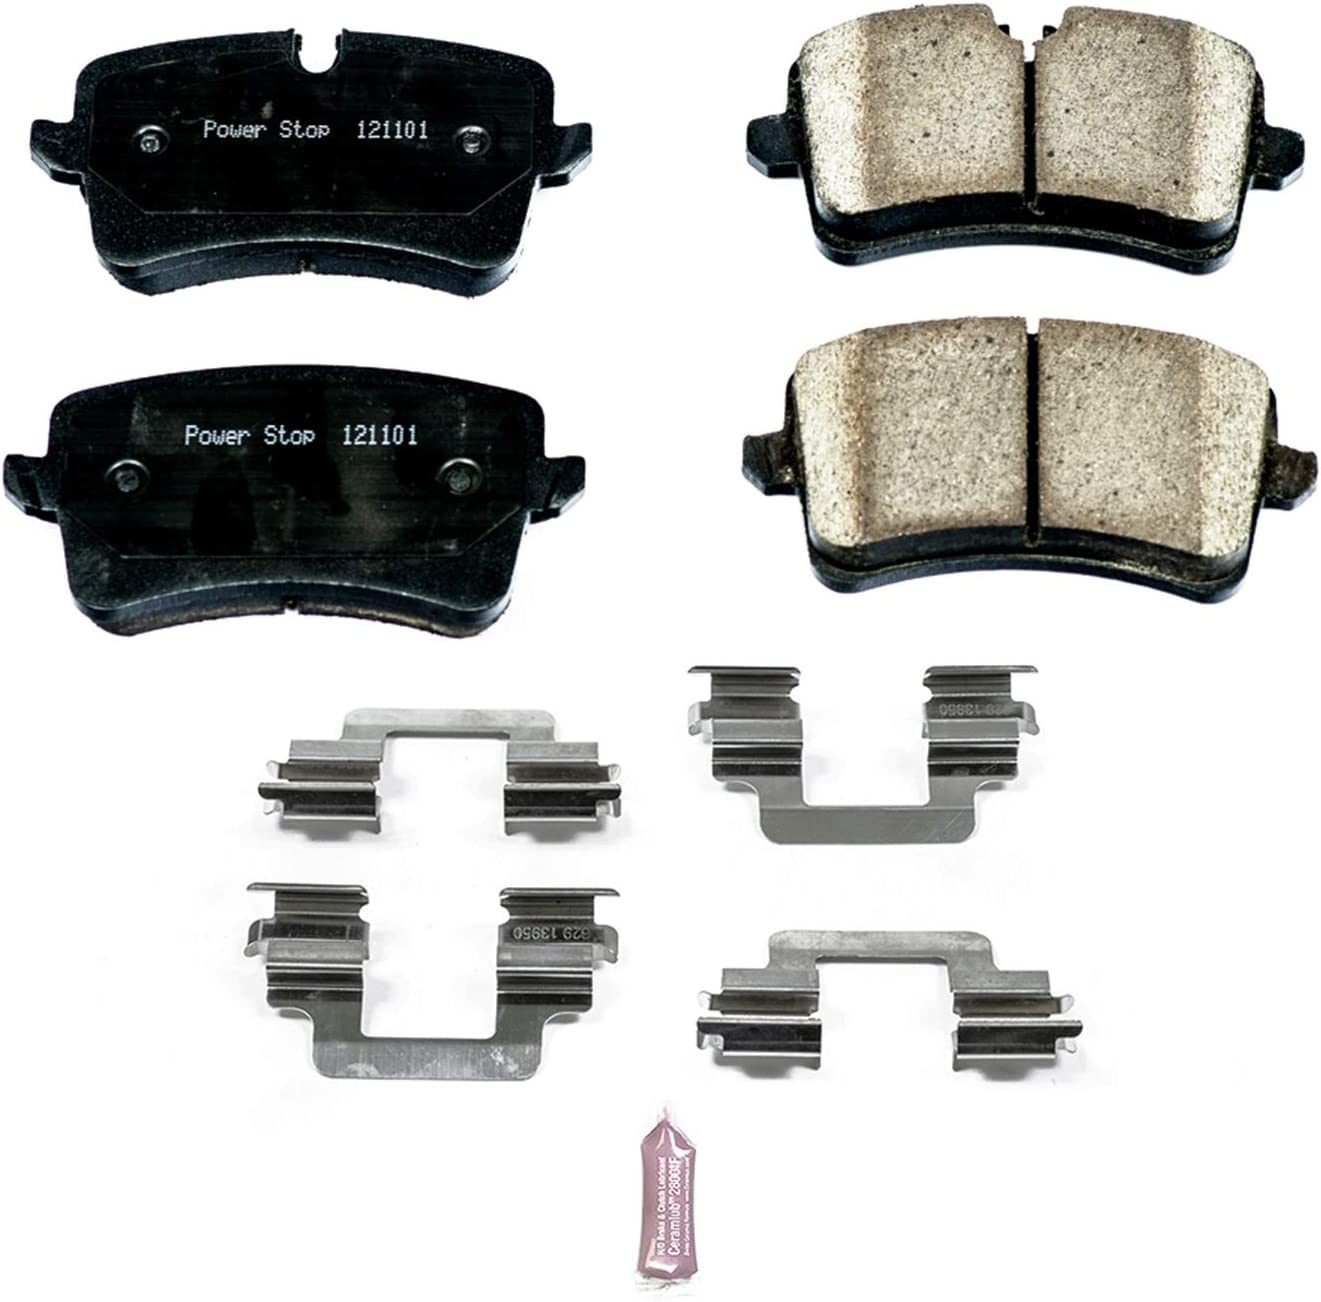 S7 A7 RS5 A8 S8 REAR RS7 Bosch BE1547H Blue Disc Brake Pad Set with Hardware for Select 2011-15 Audi A6 S6 SQ5; Porsche Macan